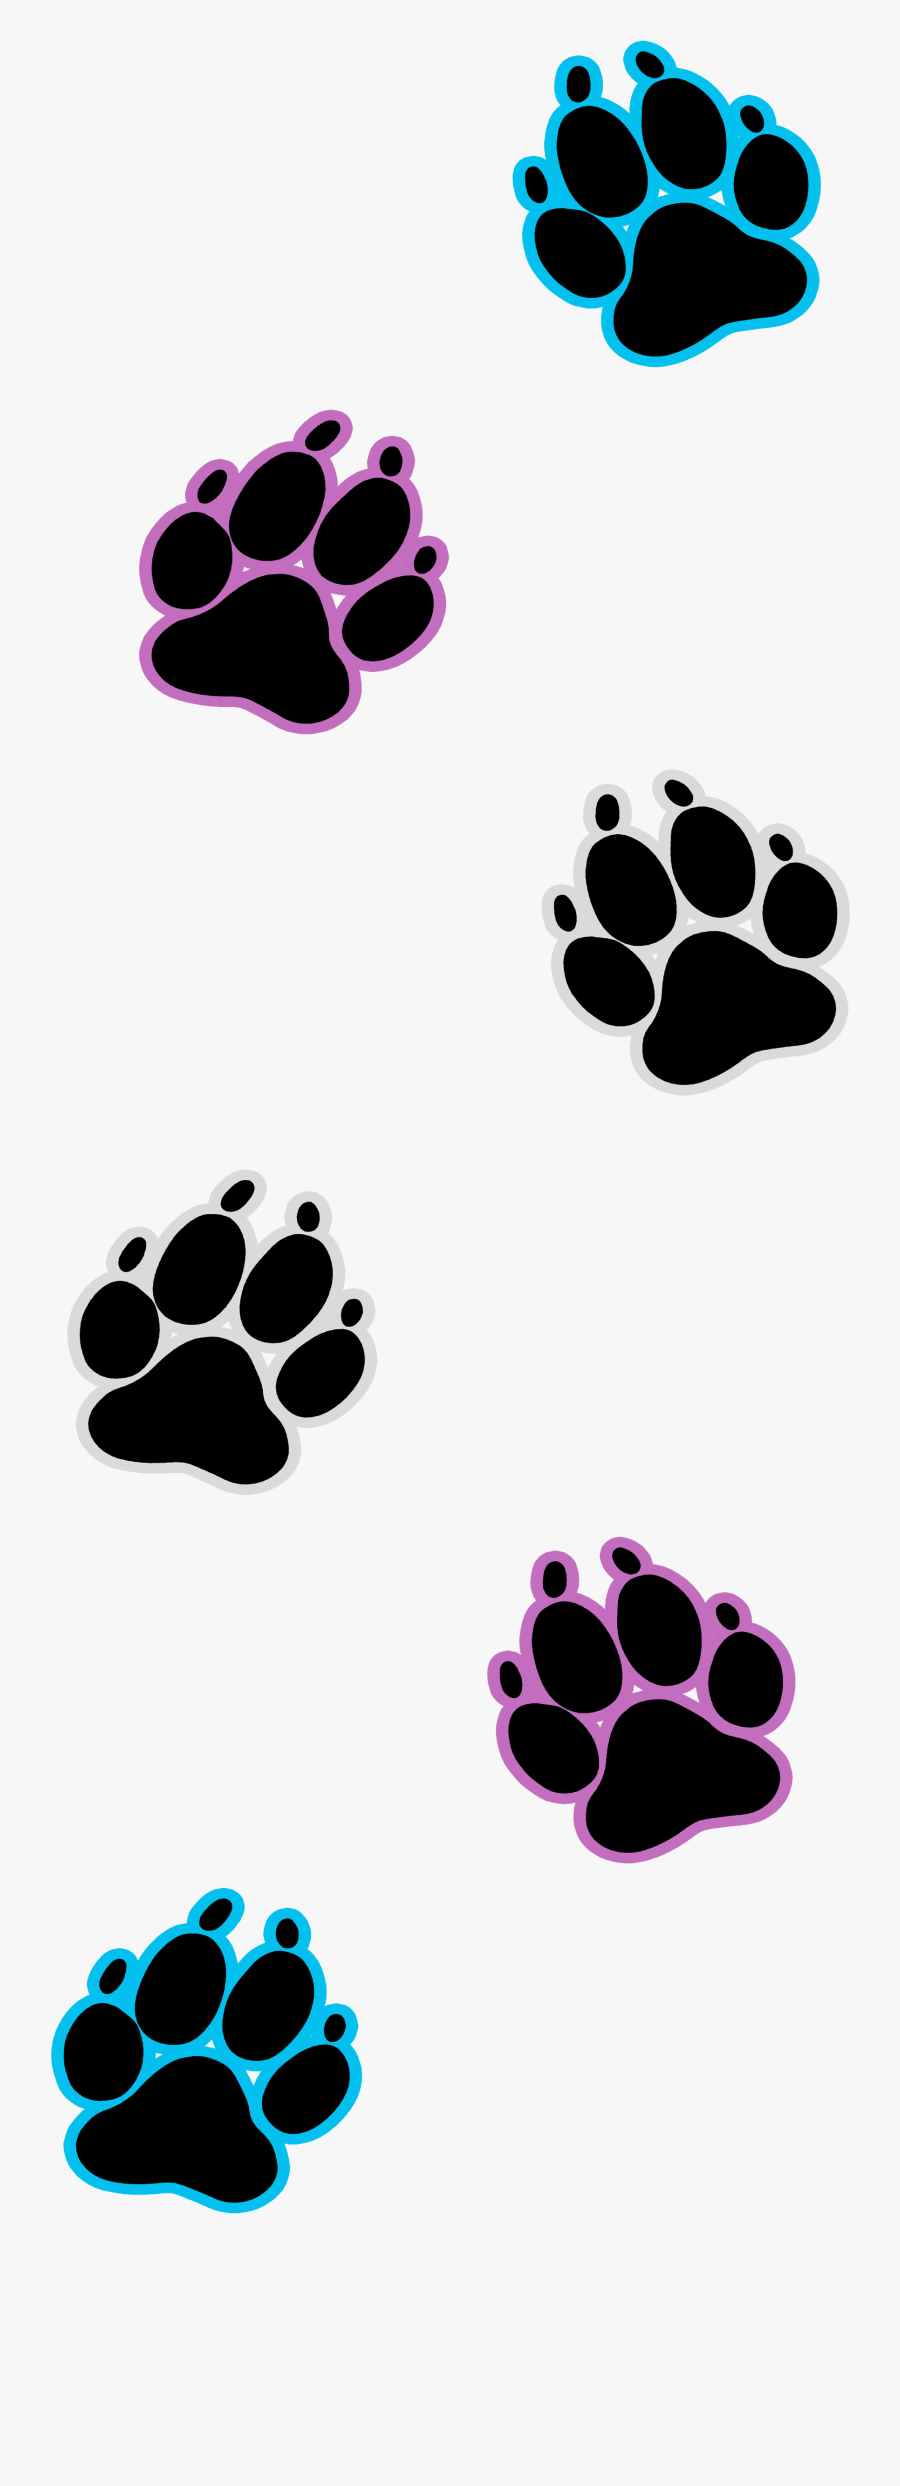 Dog Paw Prints Transparent & Png Clipart Free Download - Clip Art Transparent Paw Prints, Transparent Clipart